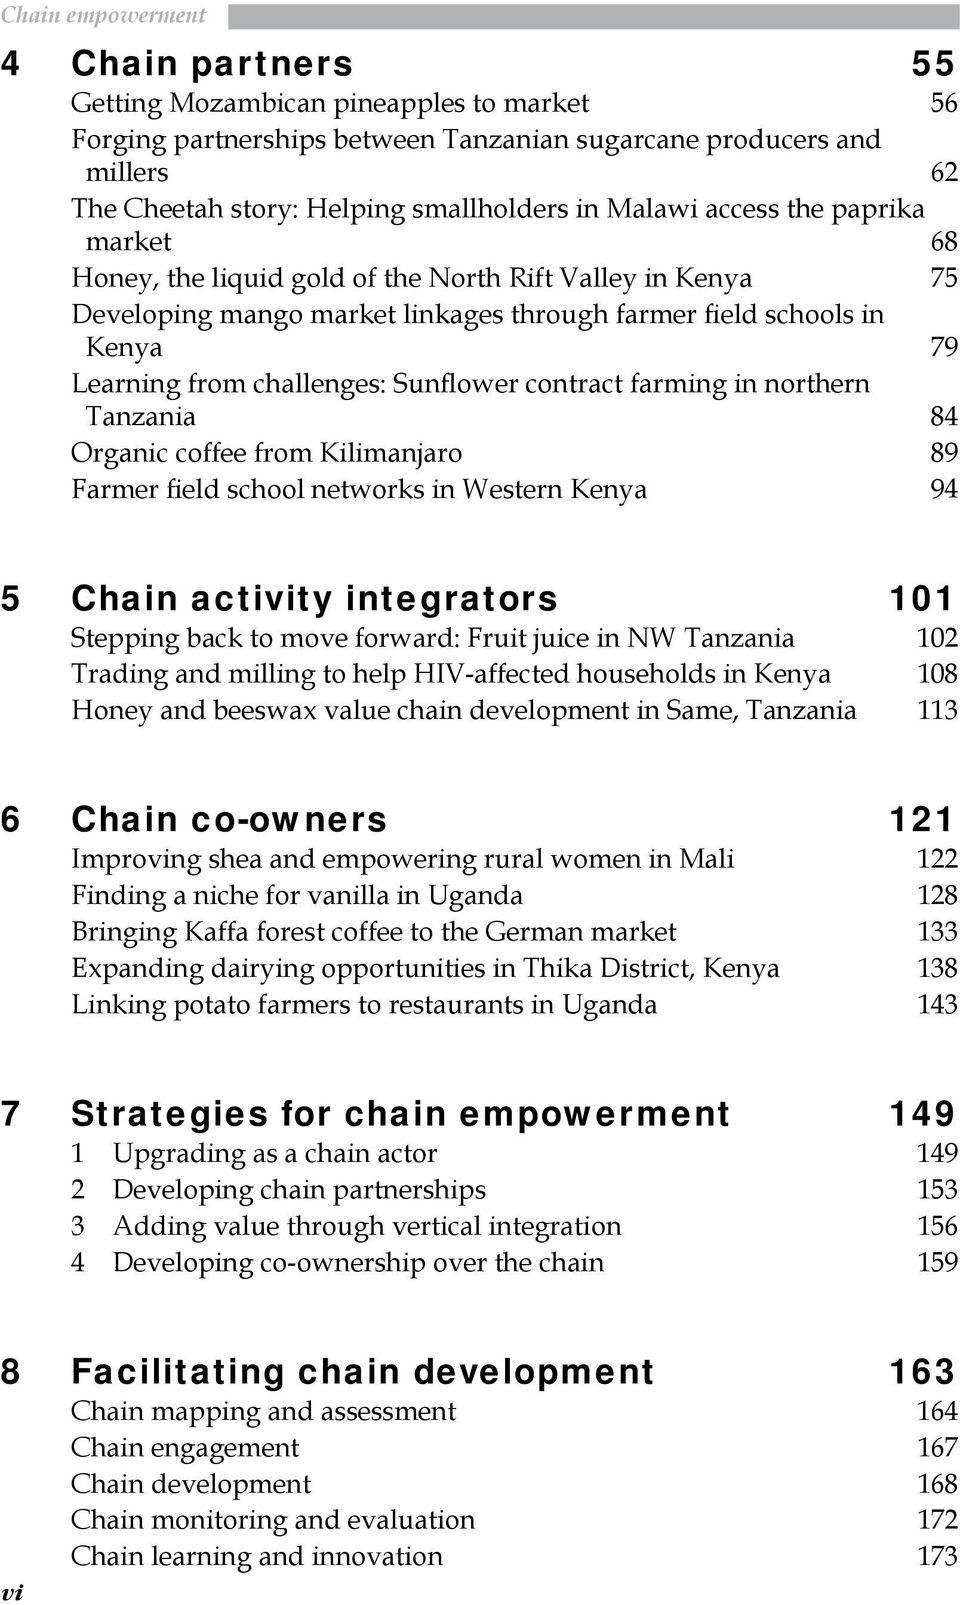 farming in northern Tanzania 84 Organic coffee from Kilimanjaro 89 Farmer field school networks in Western Kenya 94 5 Chain activity integrators 101 Stepping back to move forward: Fruit juice in NW